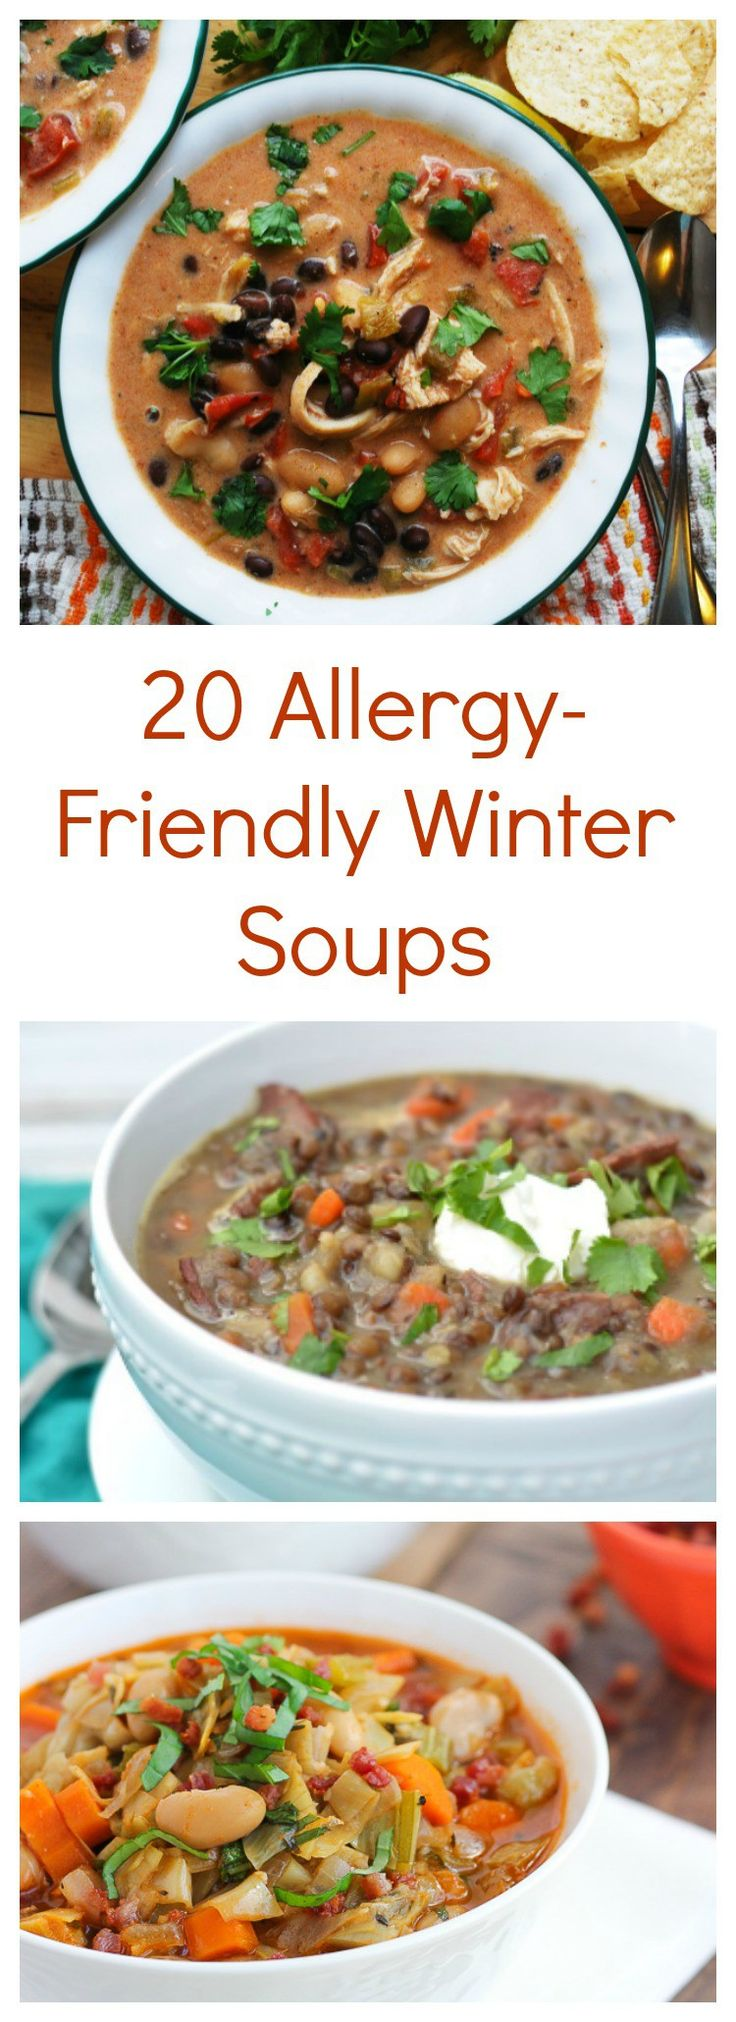 20 Allergy-Friendly Winter Soups via @allergyawesome